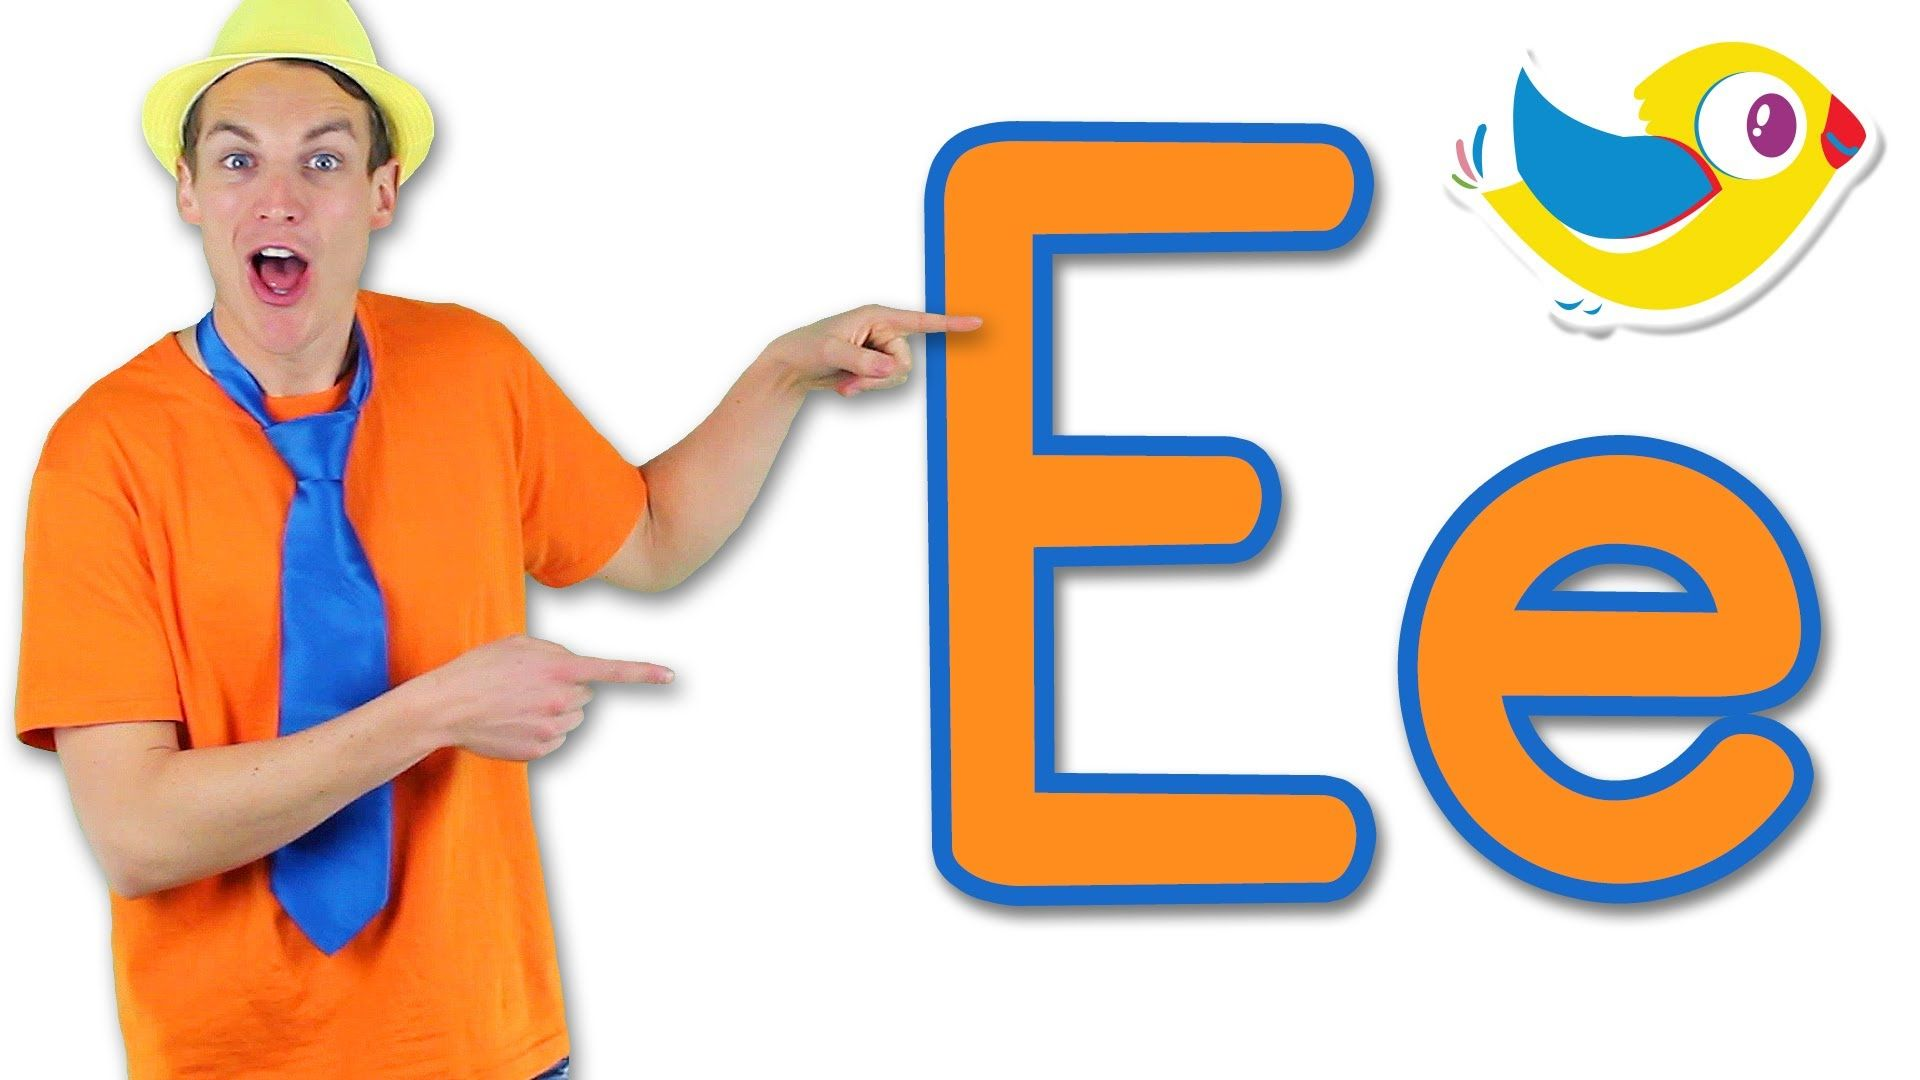 Let's learn the alphabet! What letter comes next? Letter E